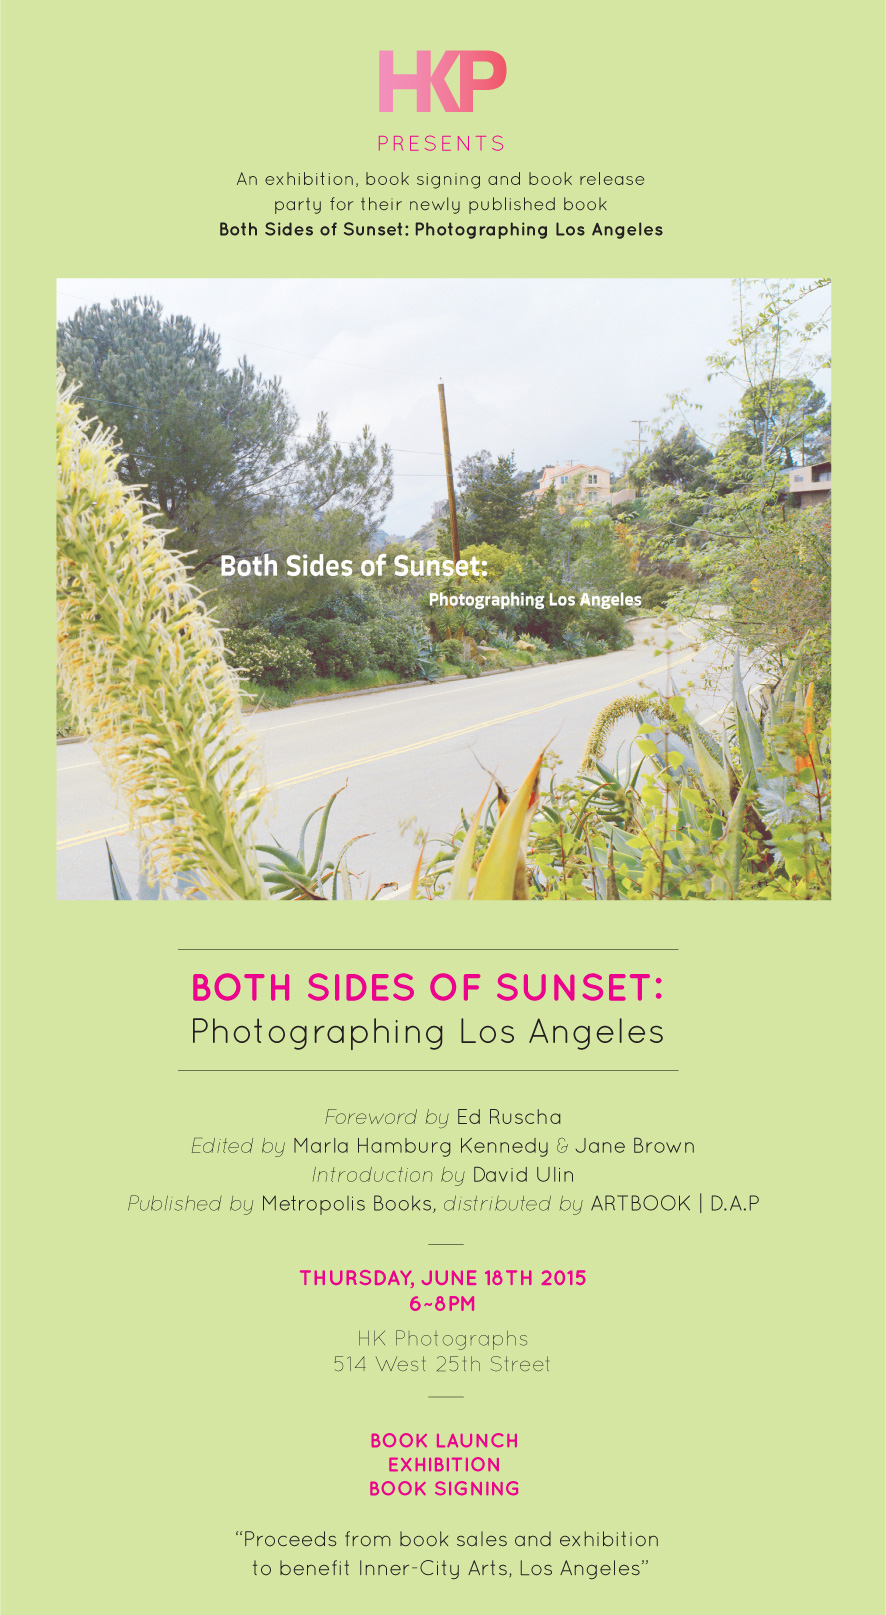 Both Sides of Sunset: Photographing Los Angeles